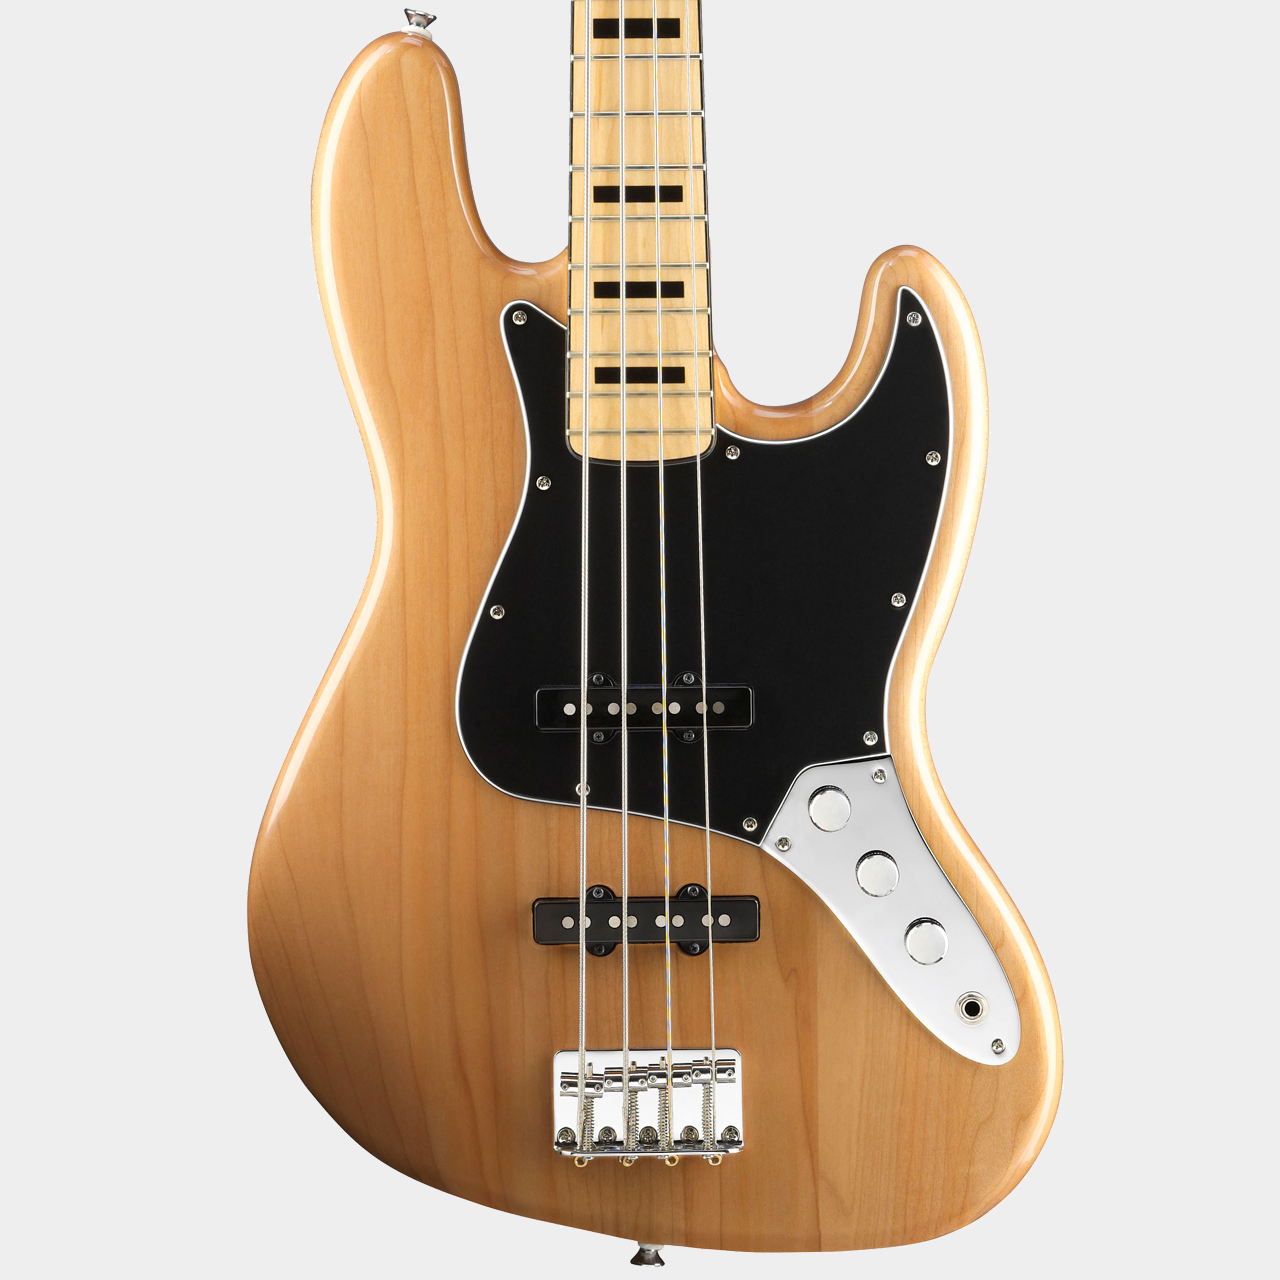 SQUIER Vintage Modified Jazz Bass MN Natural Body Detail